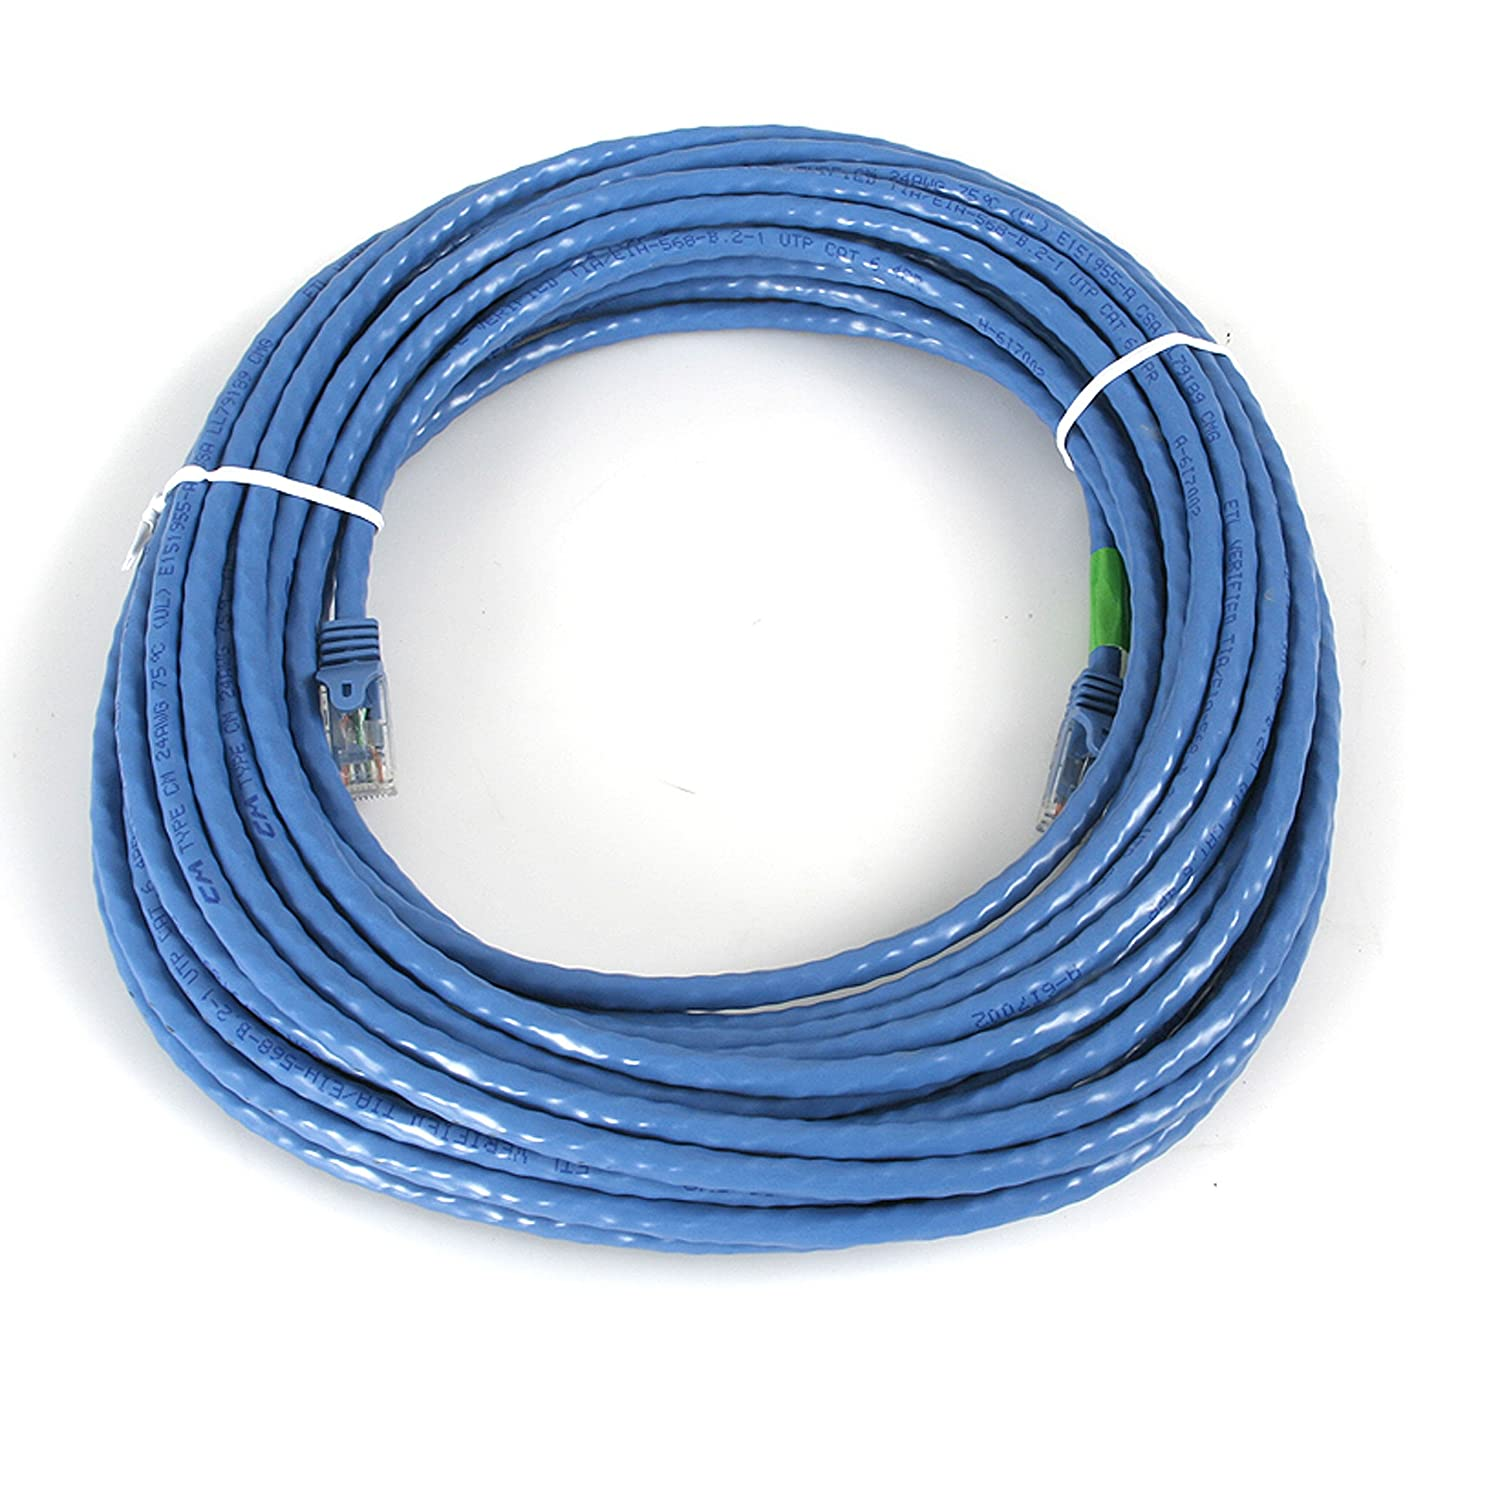 StarTech.com Cat6 Ethernet Cable - 50 ft - Blue - Patch Cable ...